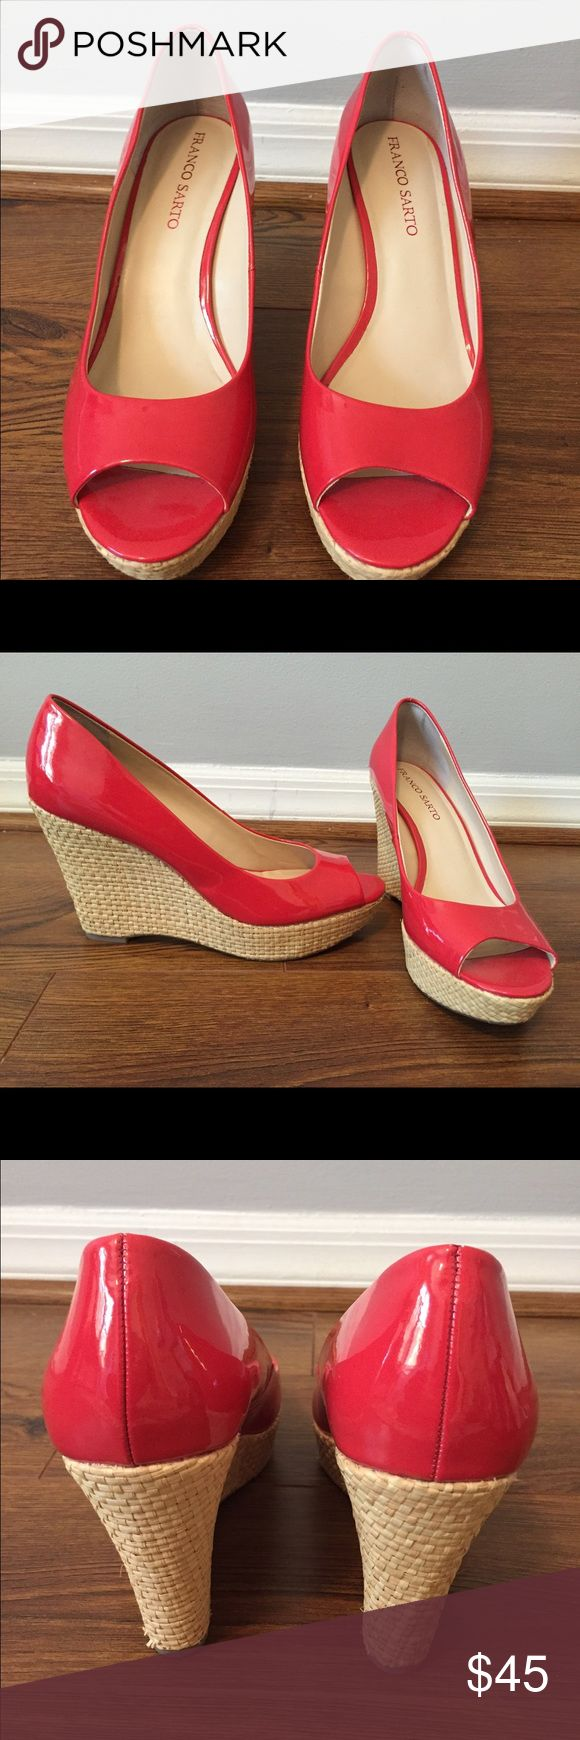 Franco Sarto Coral Peep-toe Wedge NEVER WORN, perfect condition!!  Gorgeous and bright coral wedge that will give any outfit the perfect pop of color.  Perfect for vacation or  spring and summer days. Franco Sarto Shoes Wedges